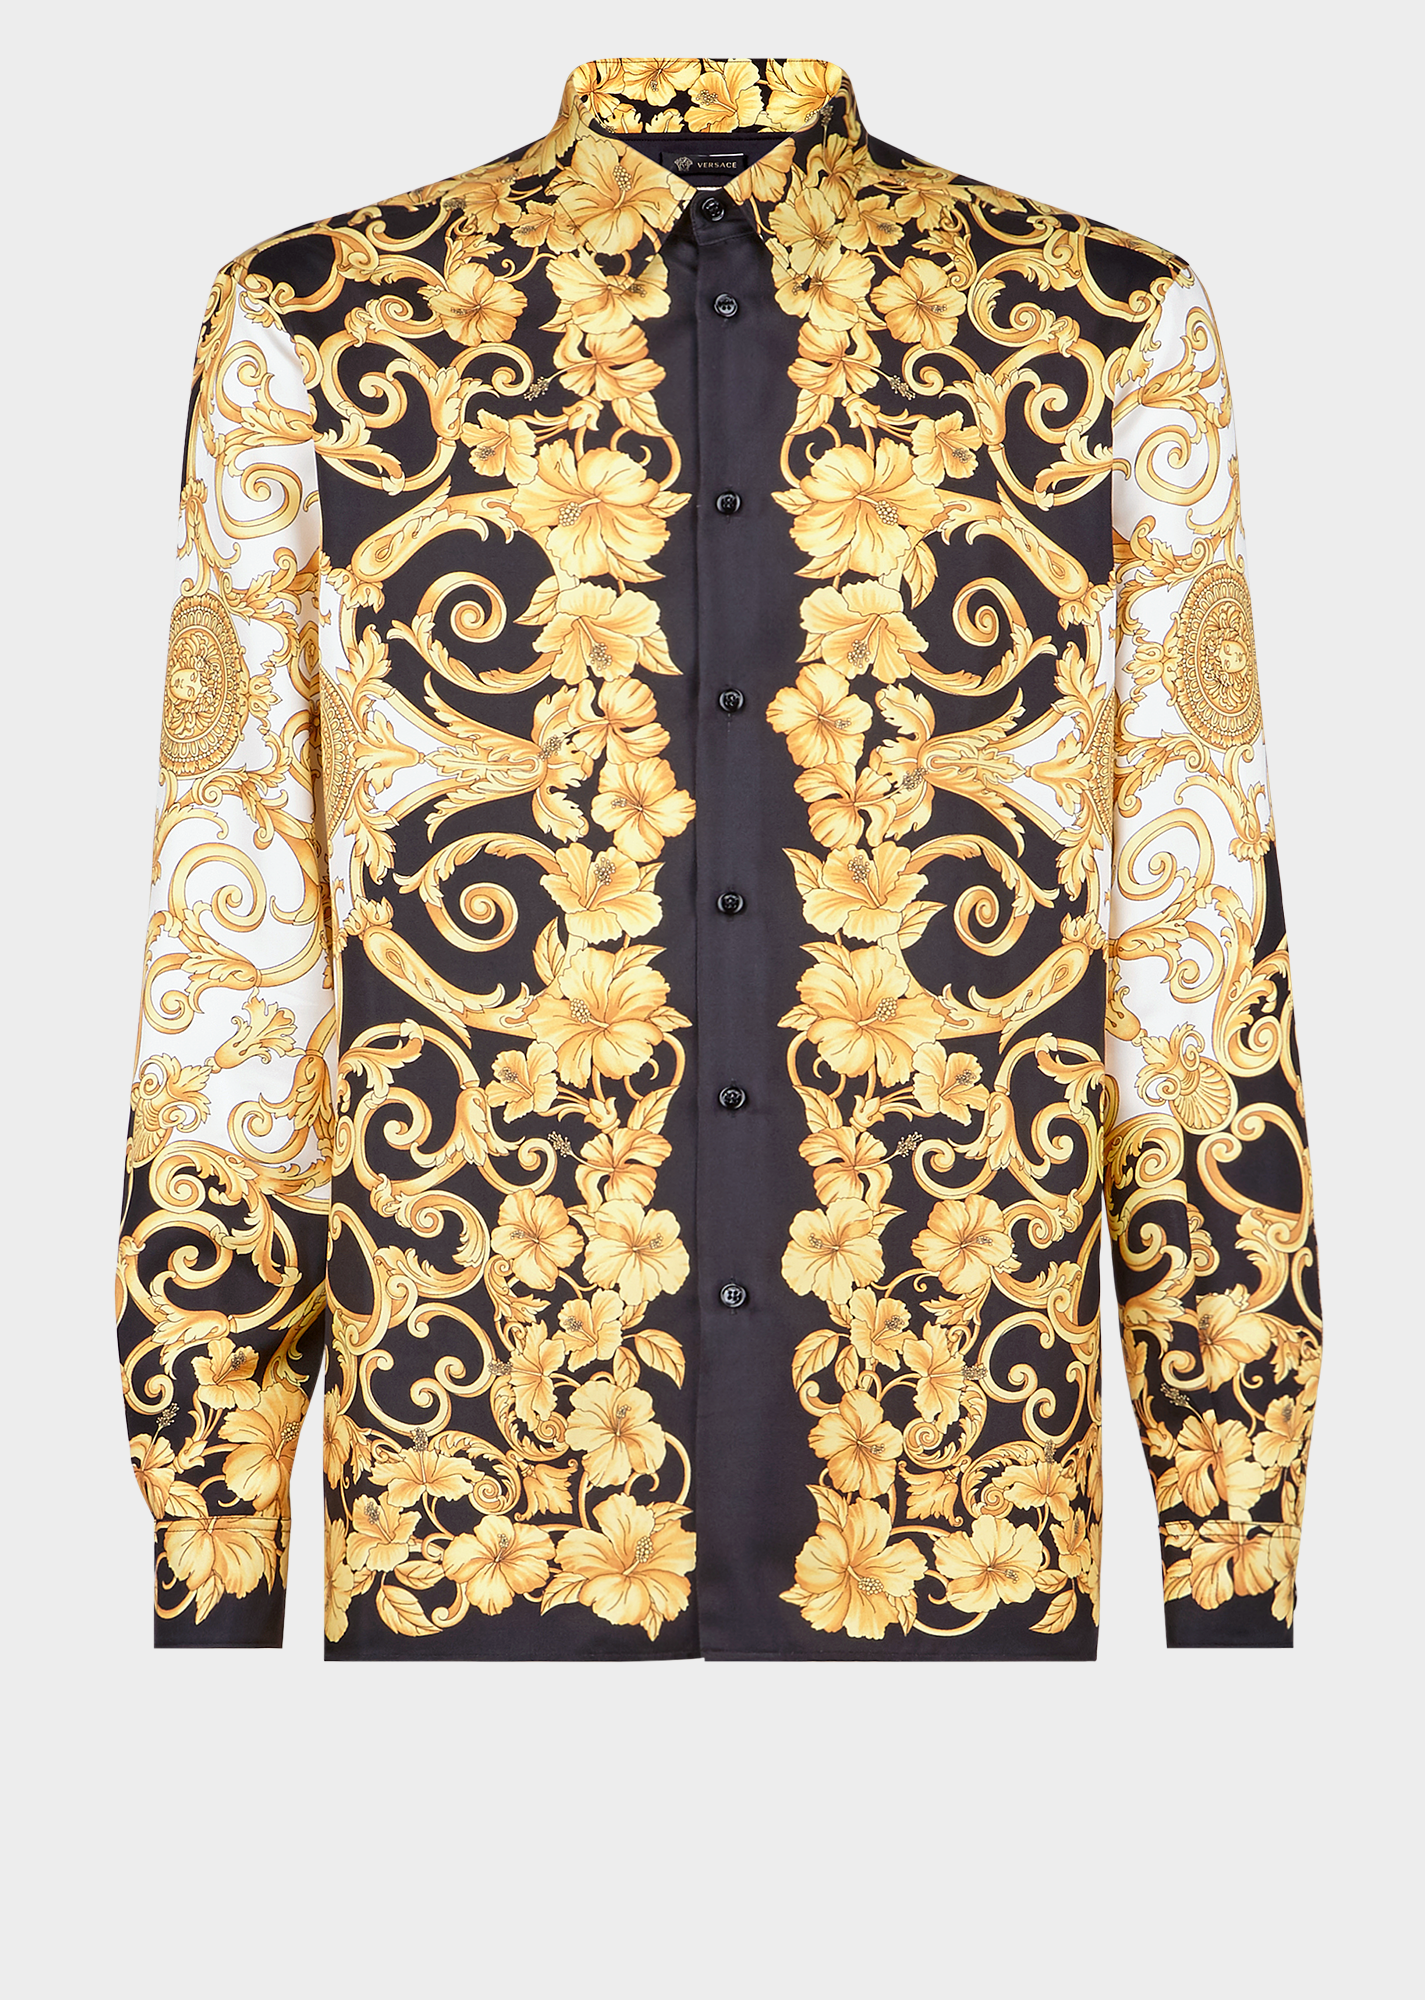 54d6435f906db0 Versace Black And Gold Silk Shirt With Iconic Gold Hibiscus Print ...